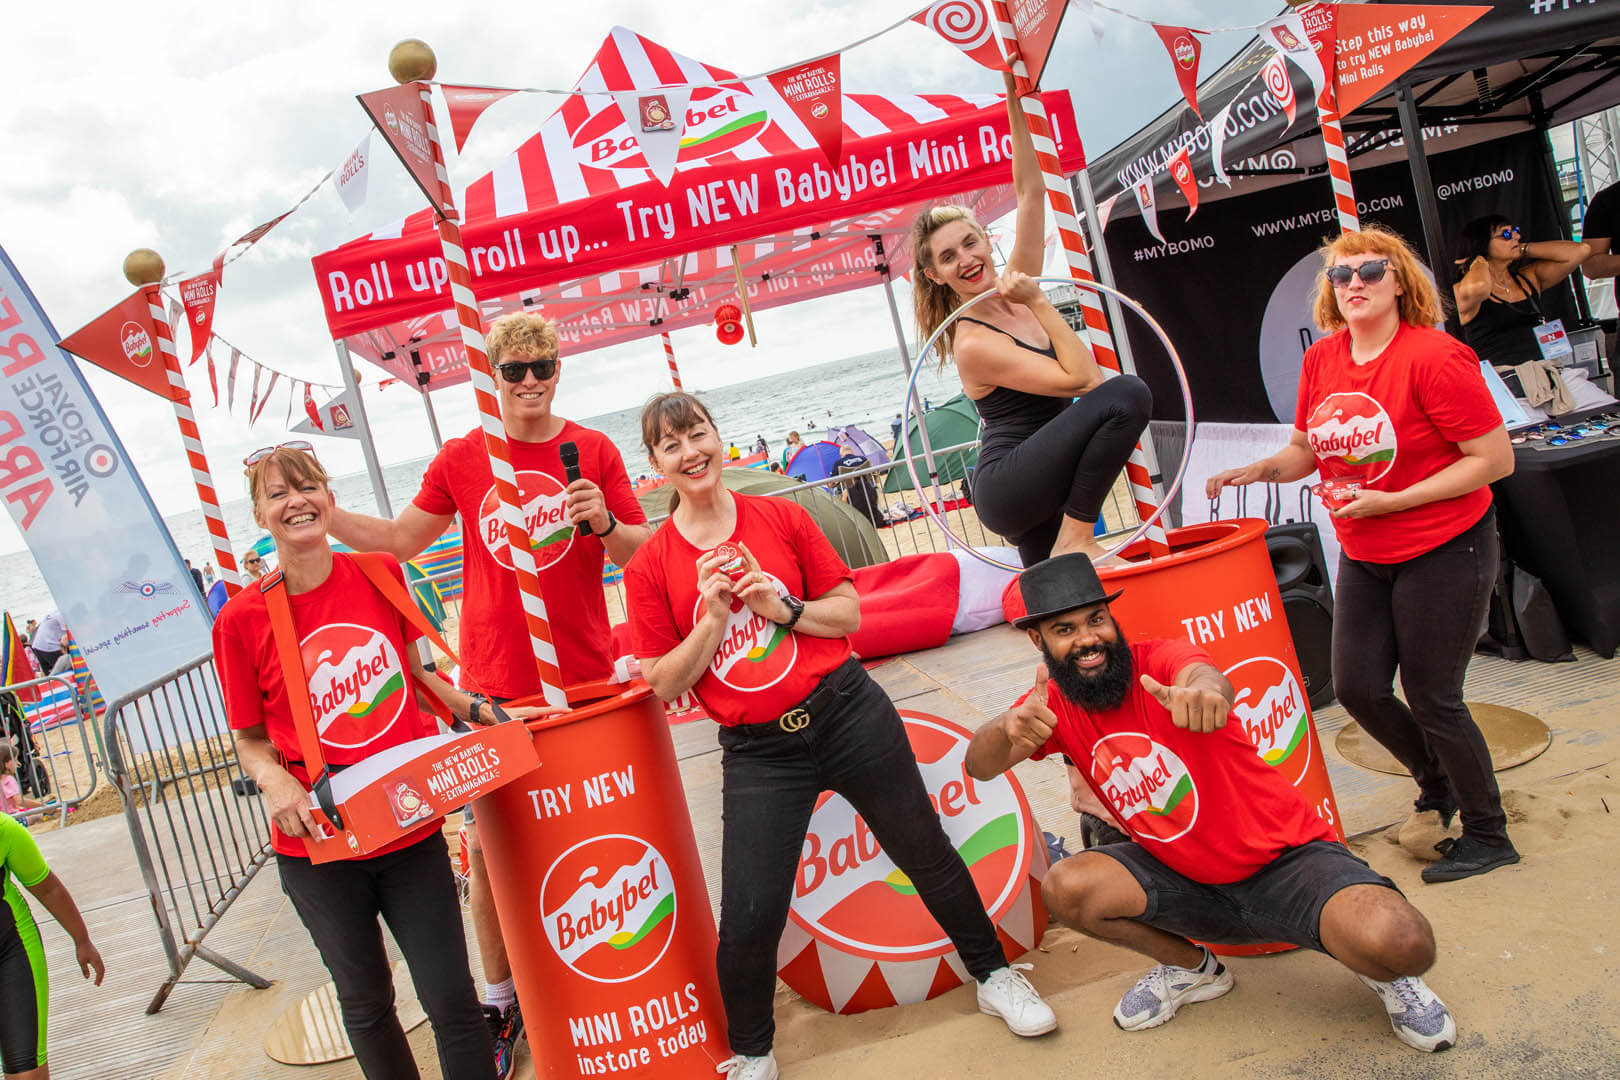 The Babybel team dressed up in the red at their trade stand for the Air show